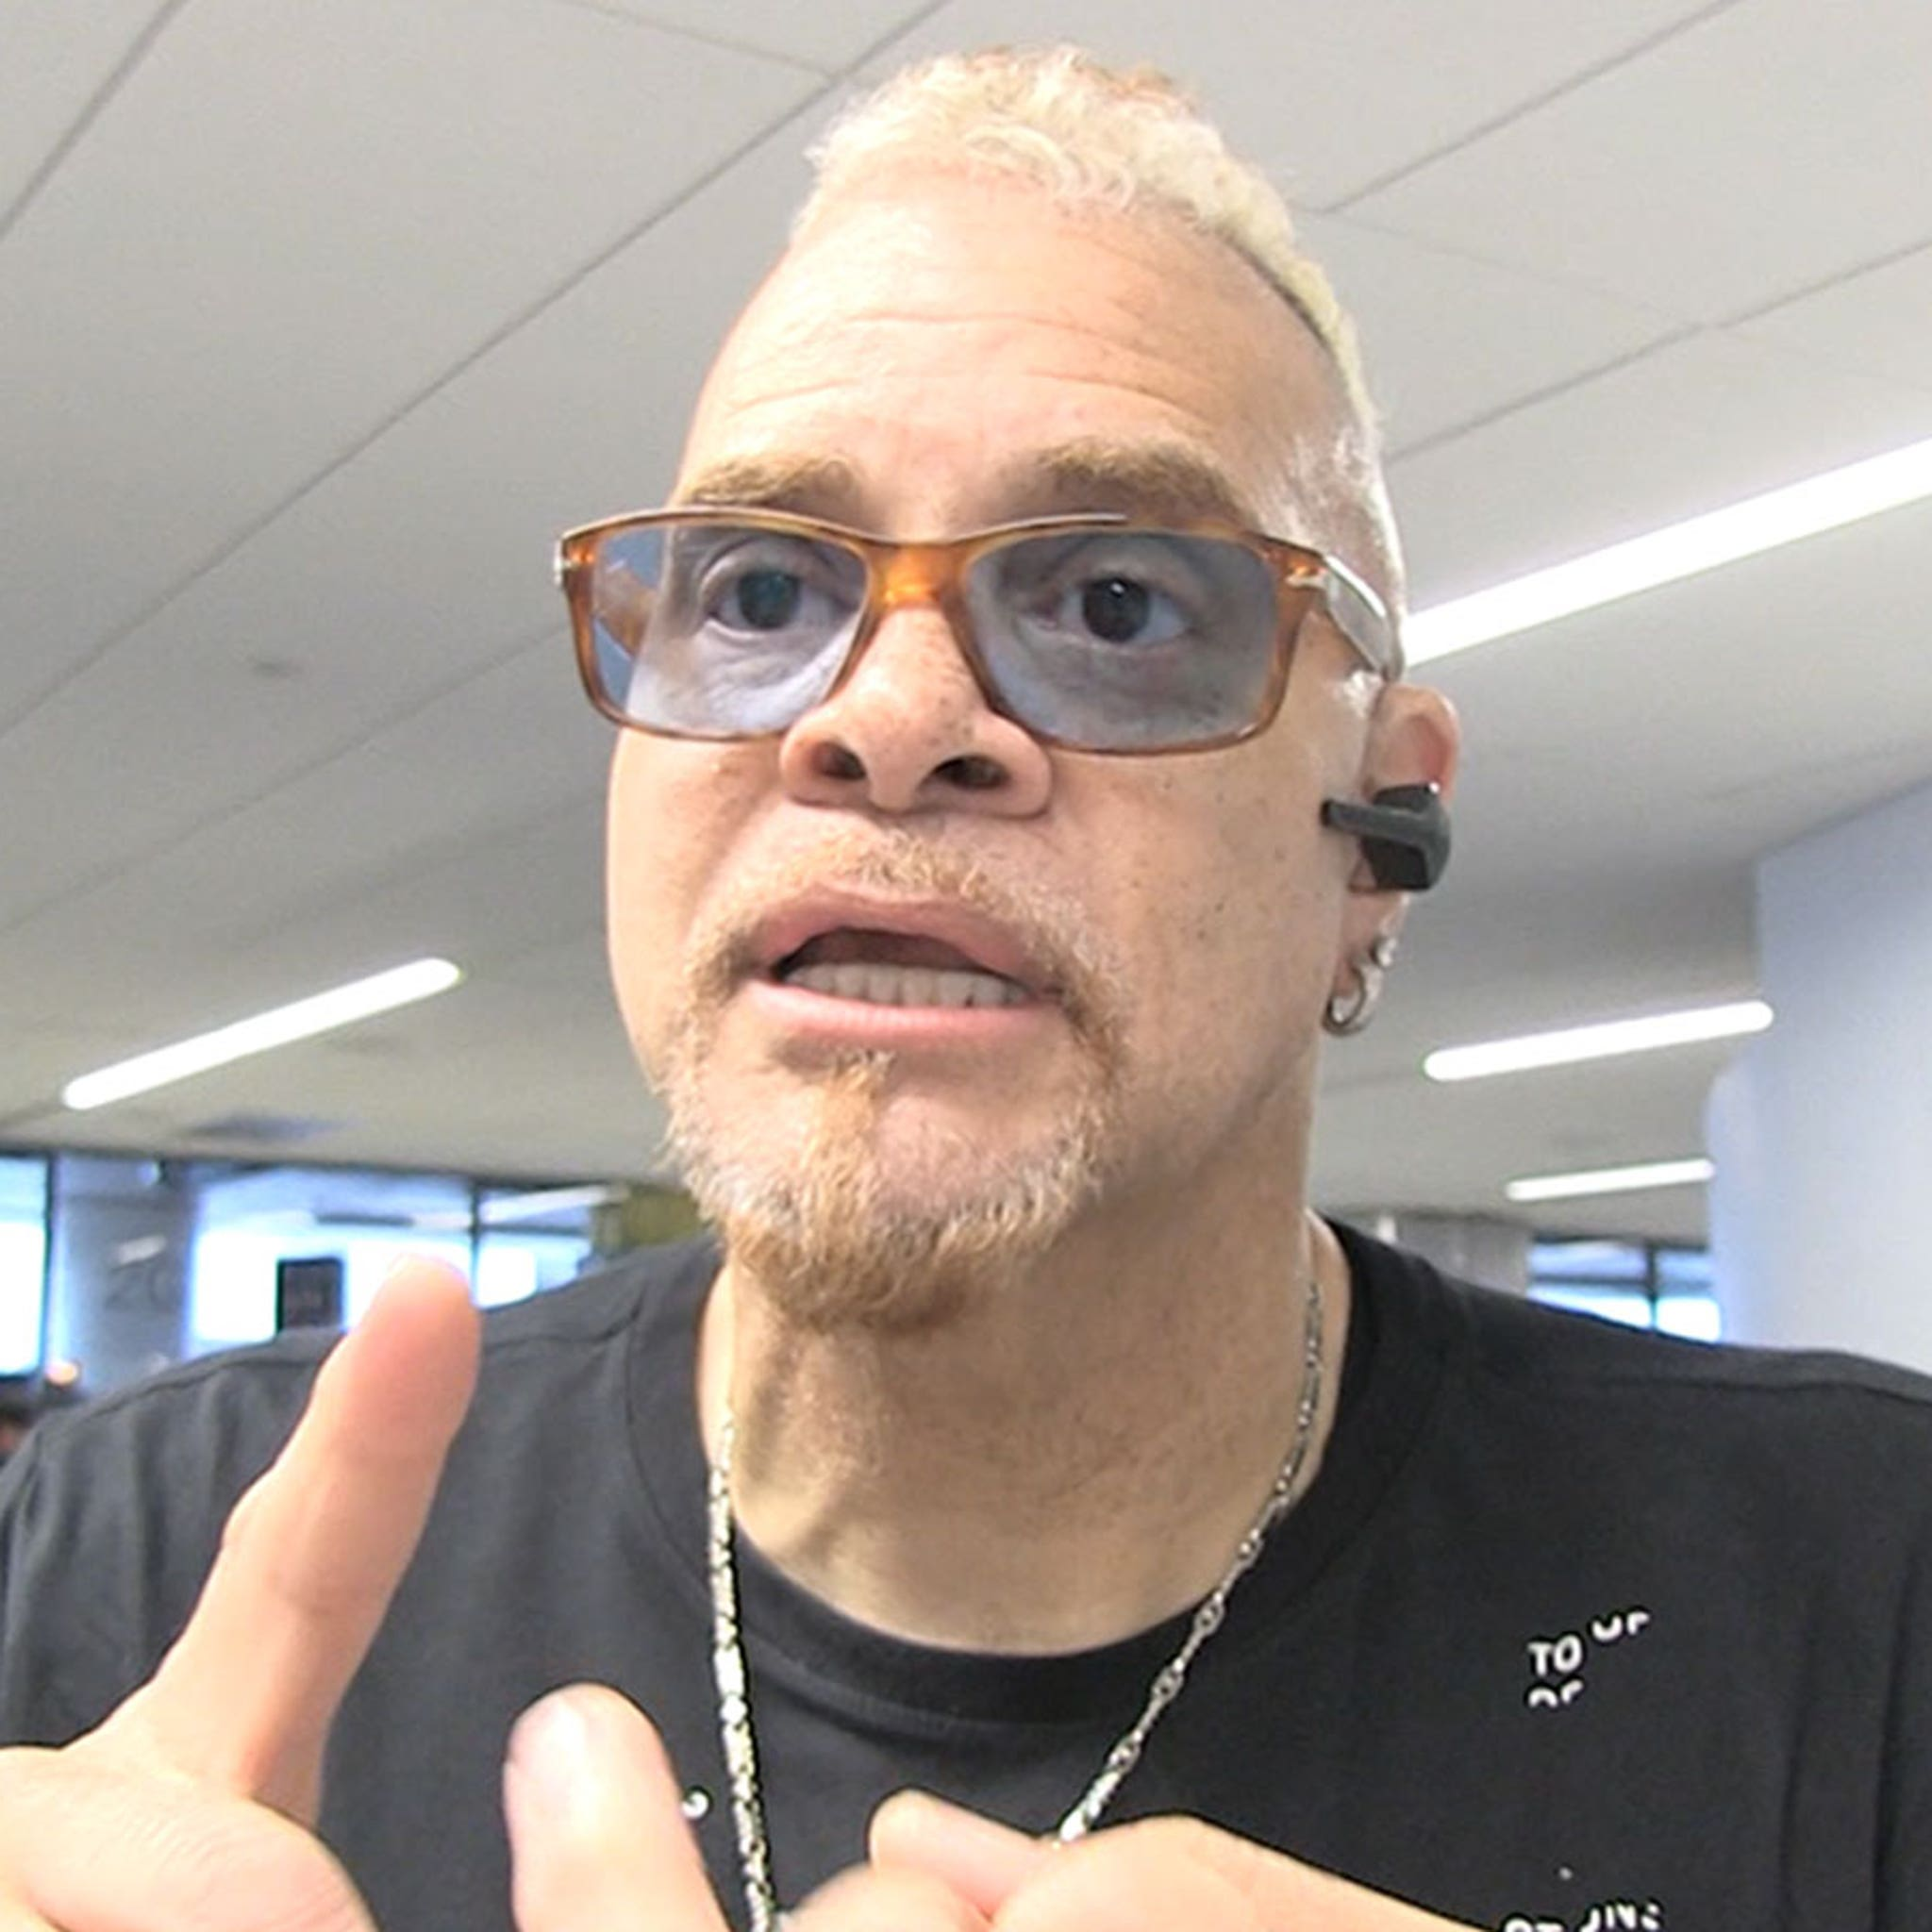 Sinbad Blasts Candace Owens on 'Never Been Great' America Debate